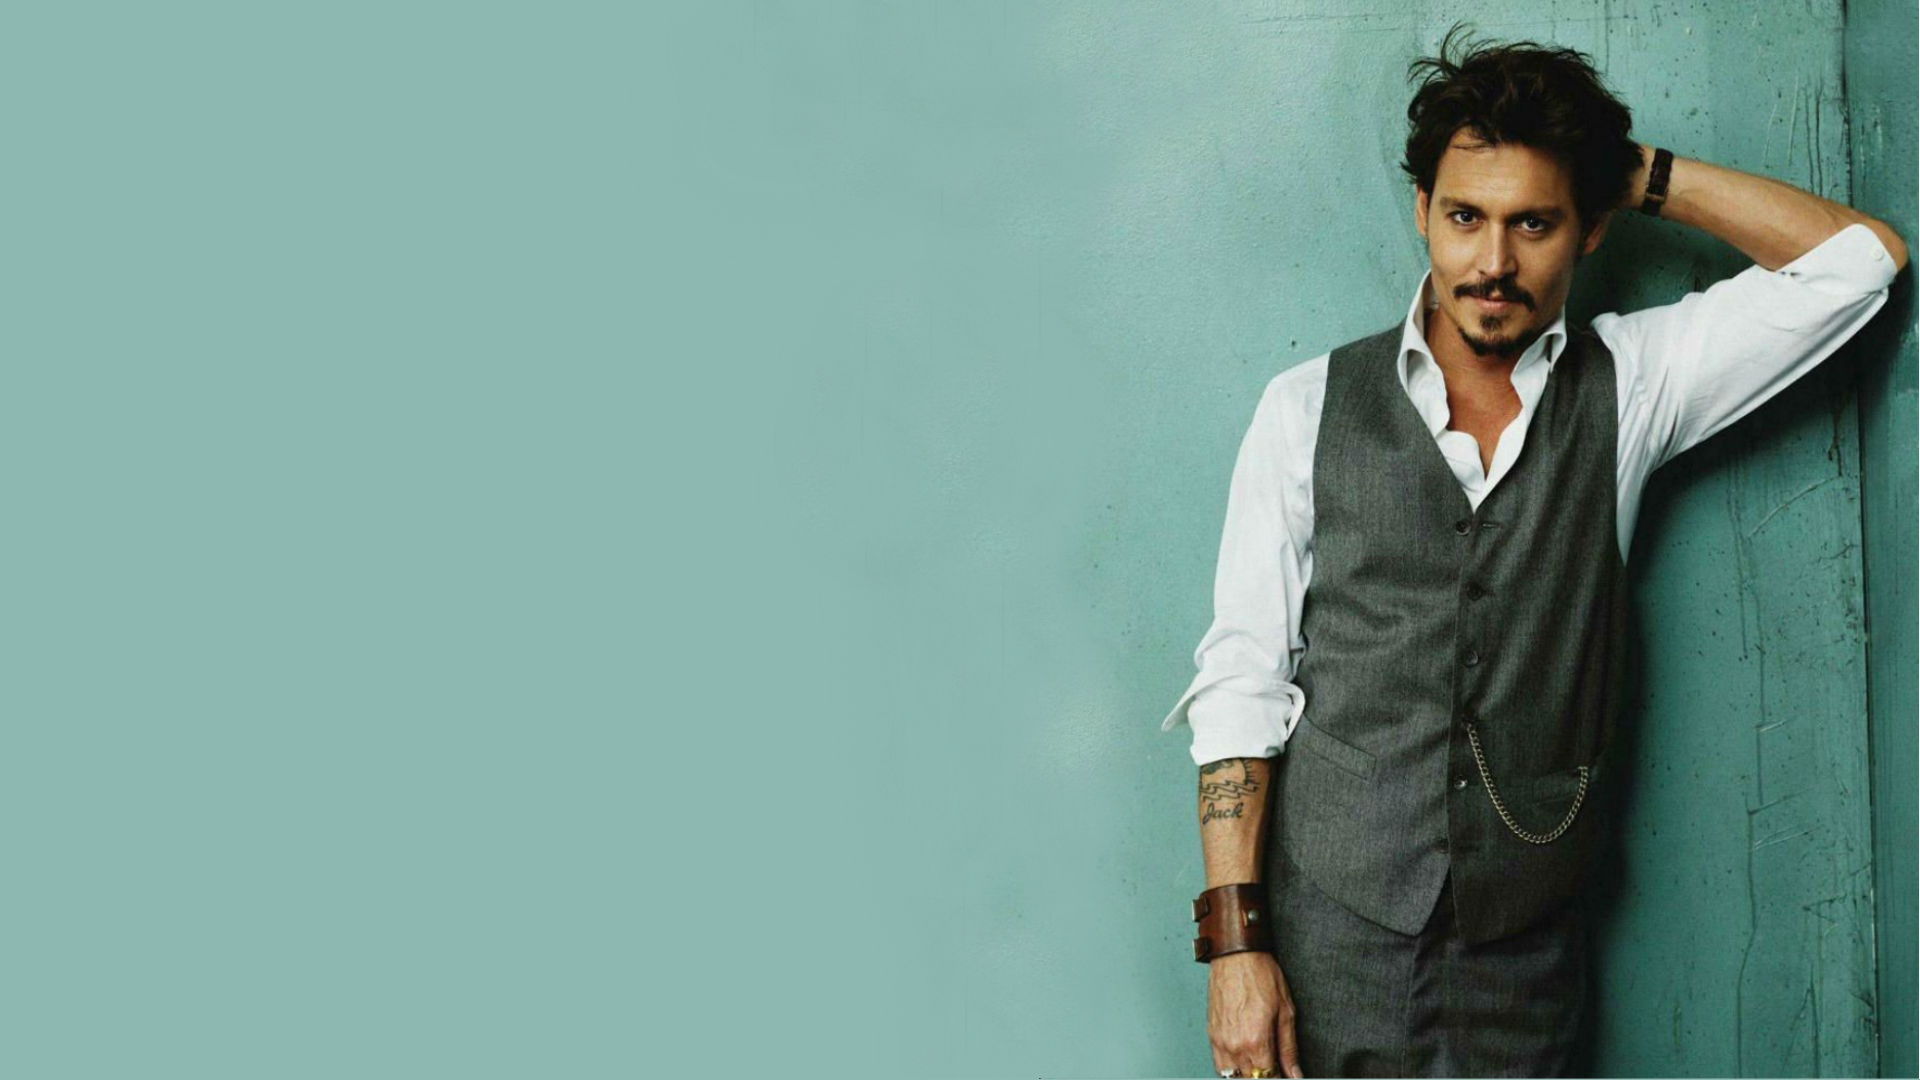 johnny depp wallpaper stylish